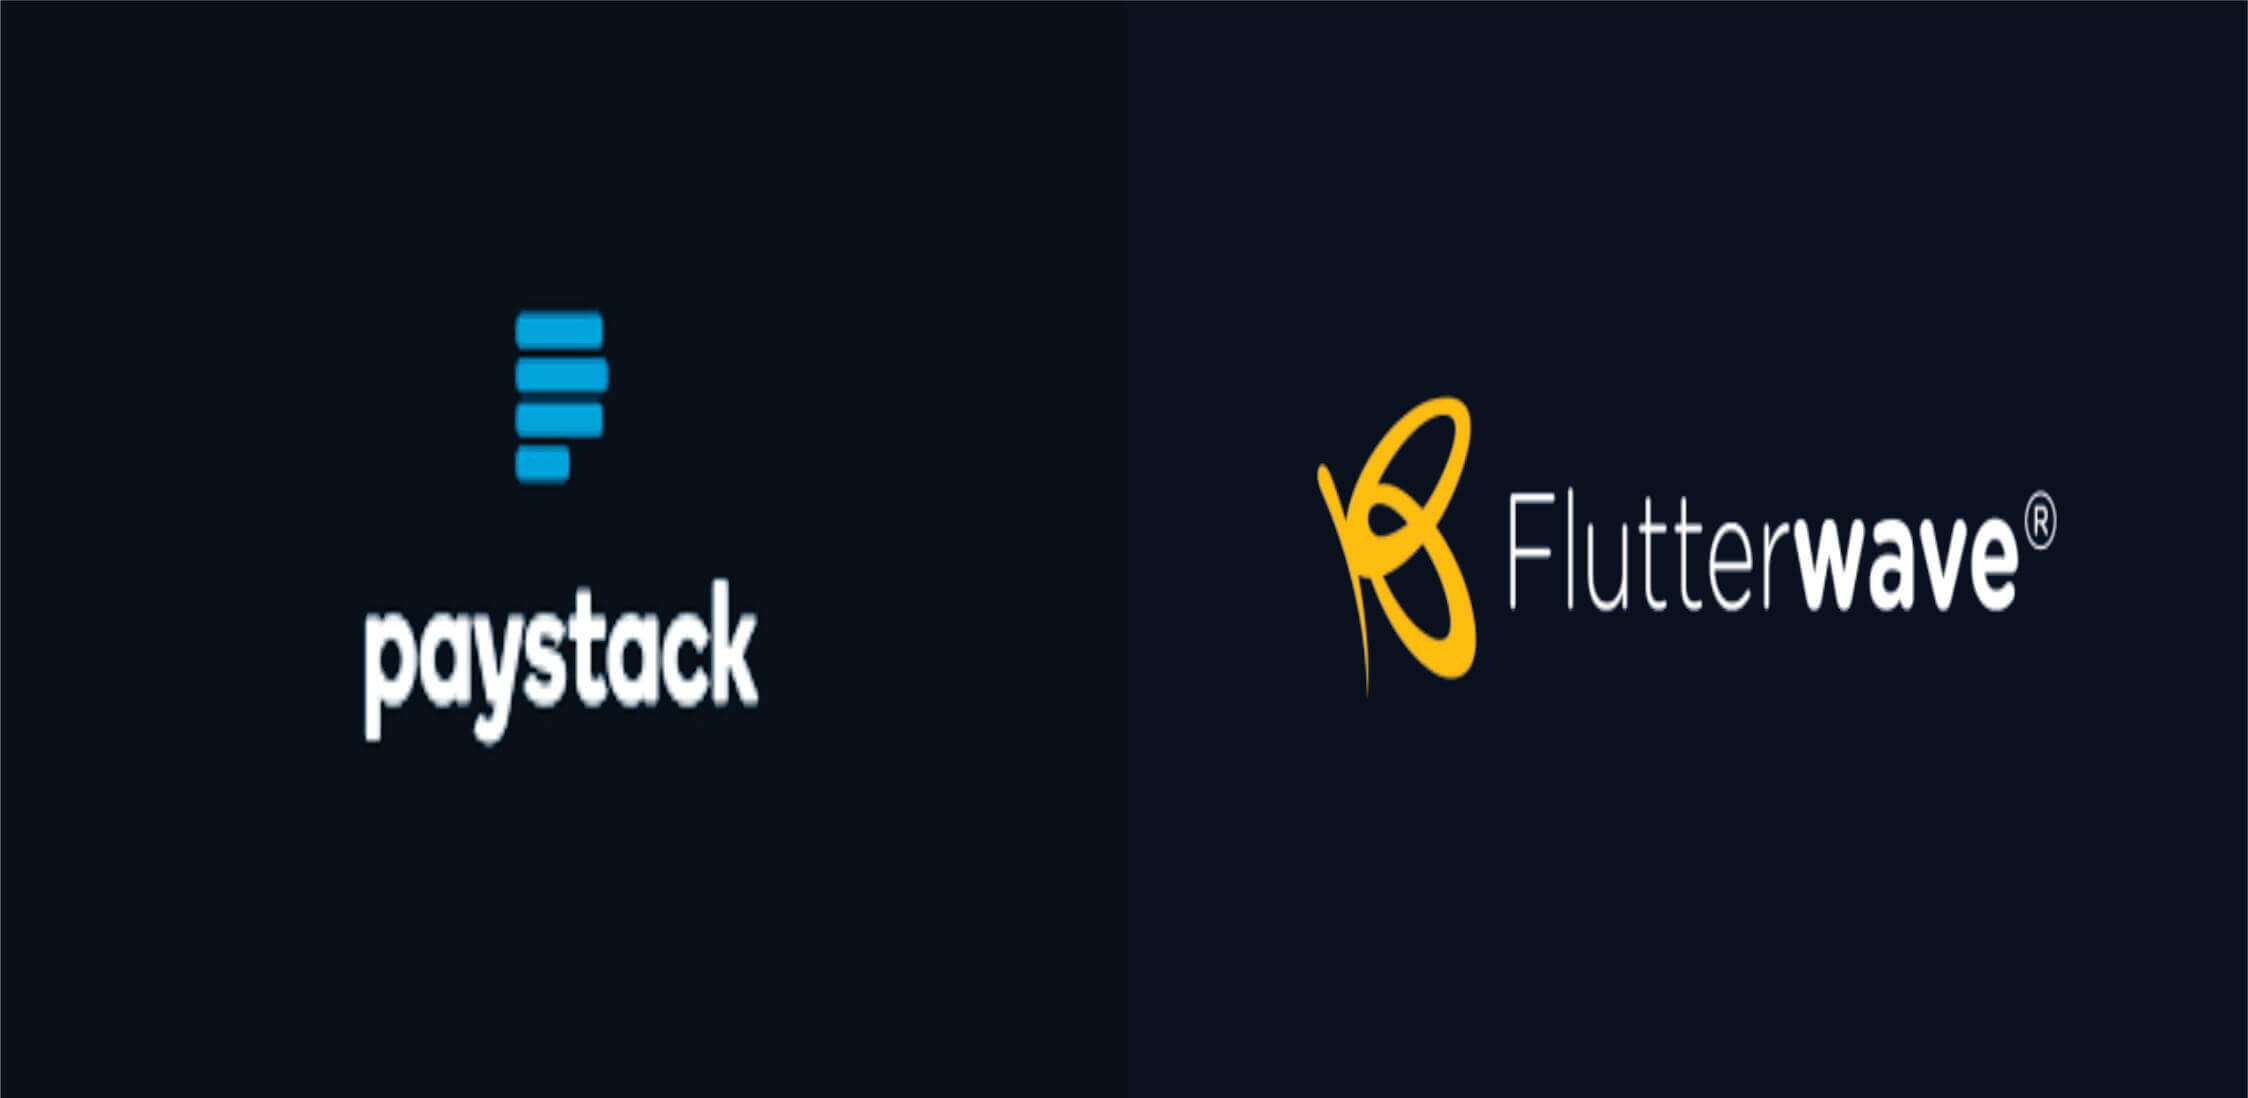 Paystack vs Flutterwave: Which is better?